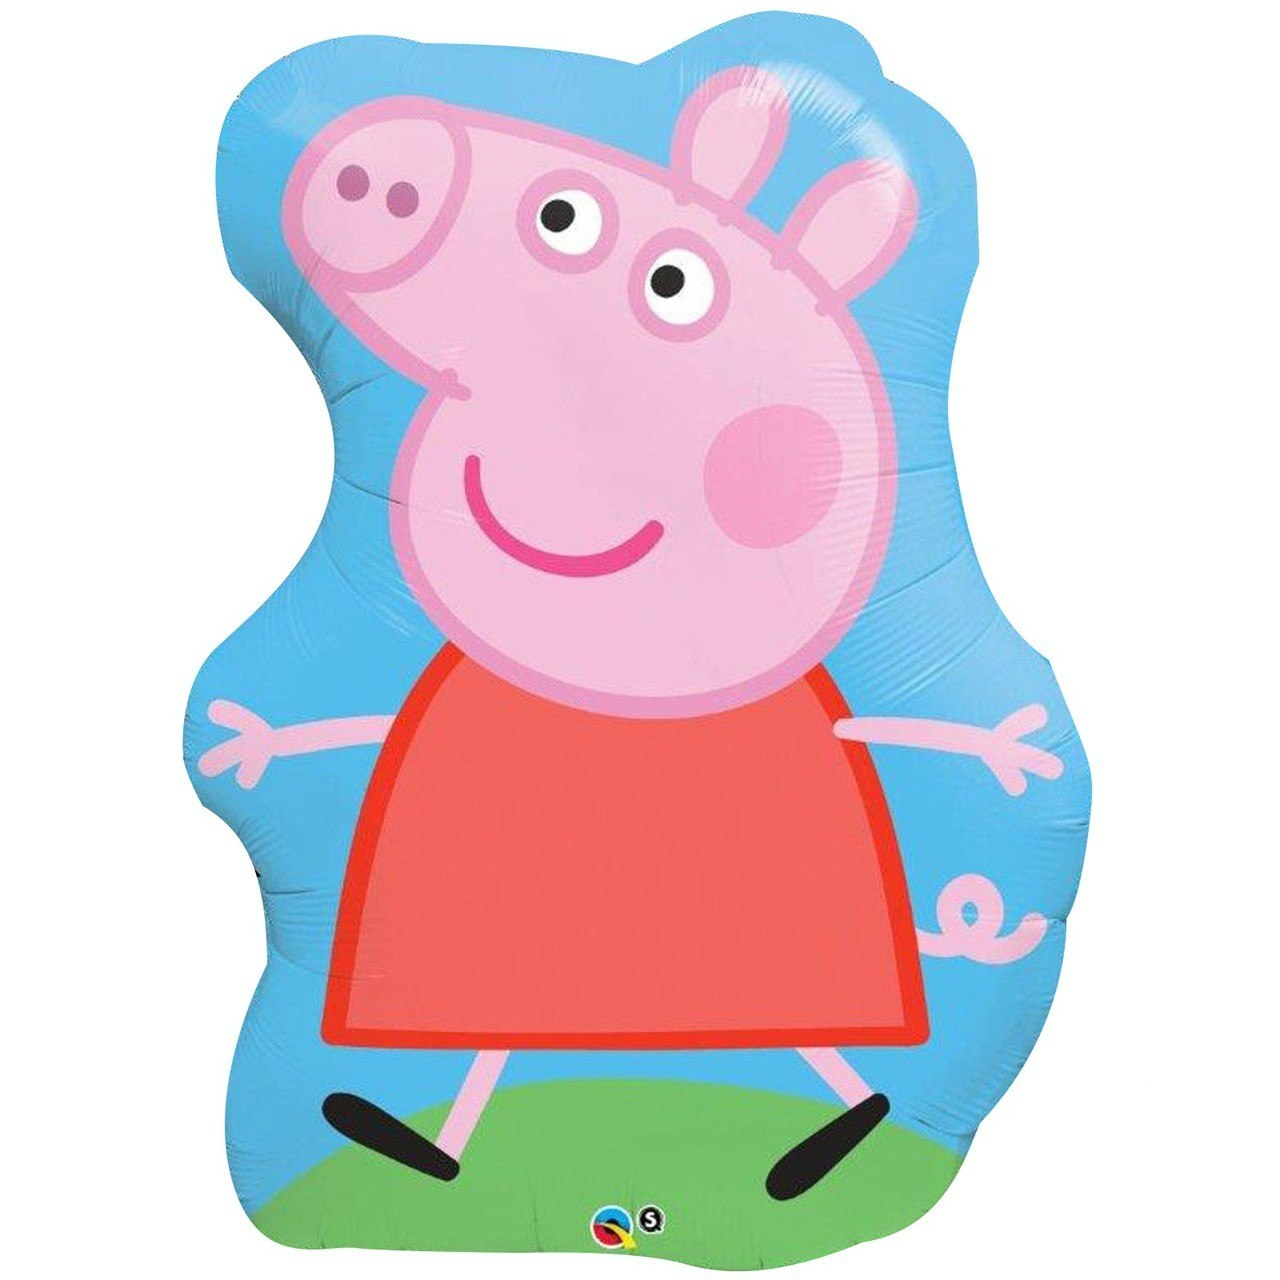 1280x1280 Peppa Pig Jumbo Foil Birthday Balloon